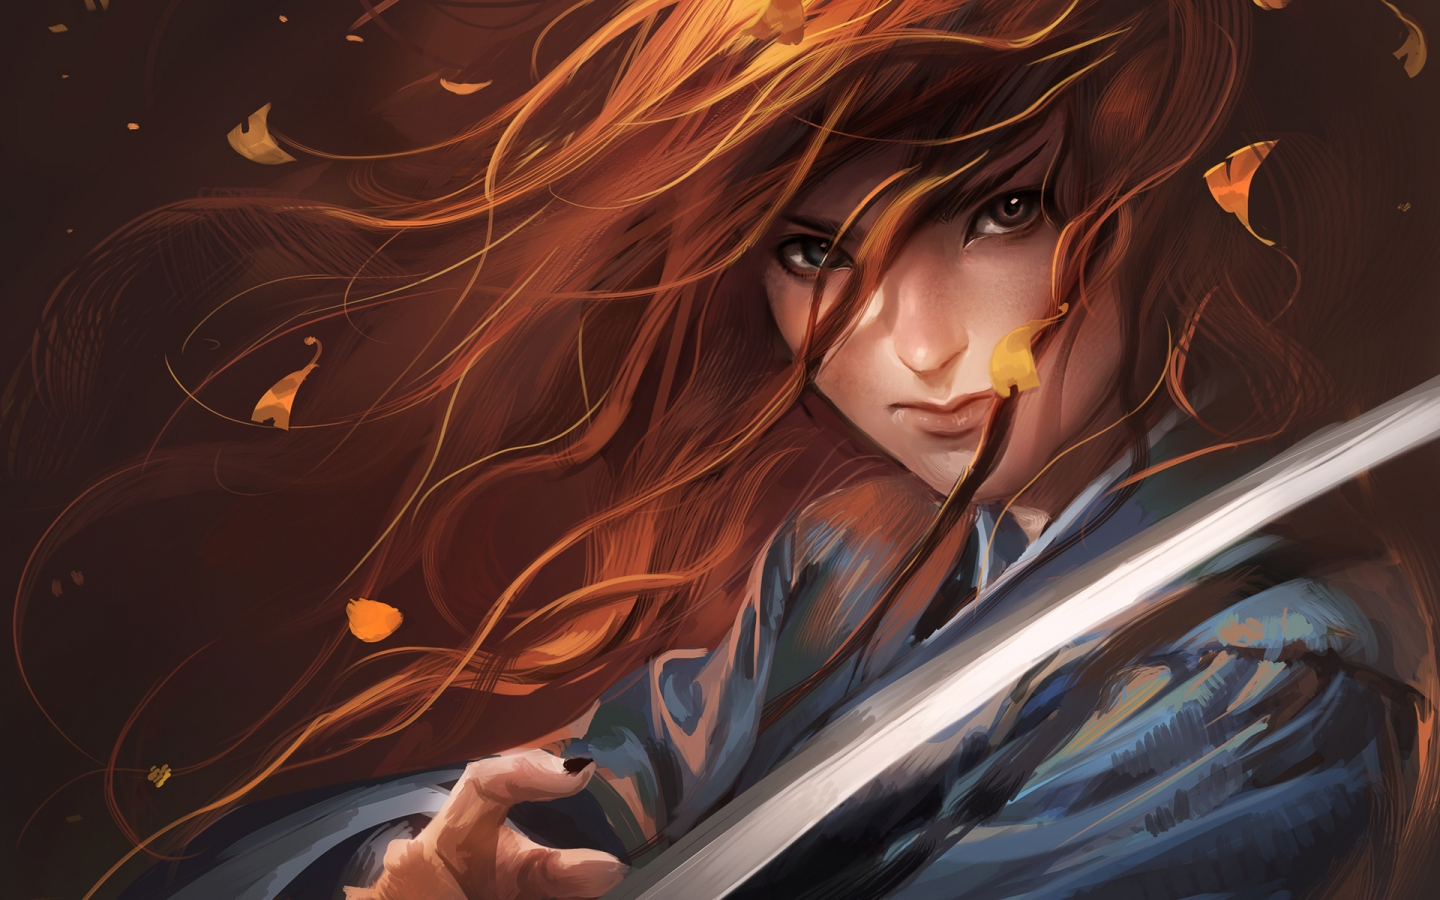 Red Haired Samurai for 1440 x 900 widescreen resolution